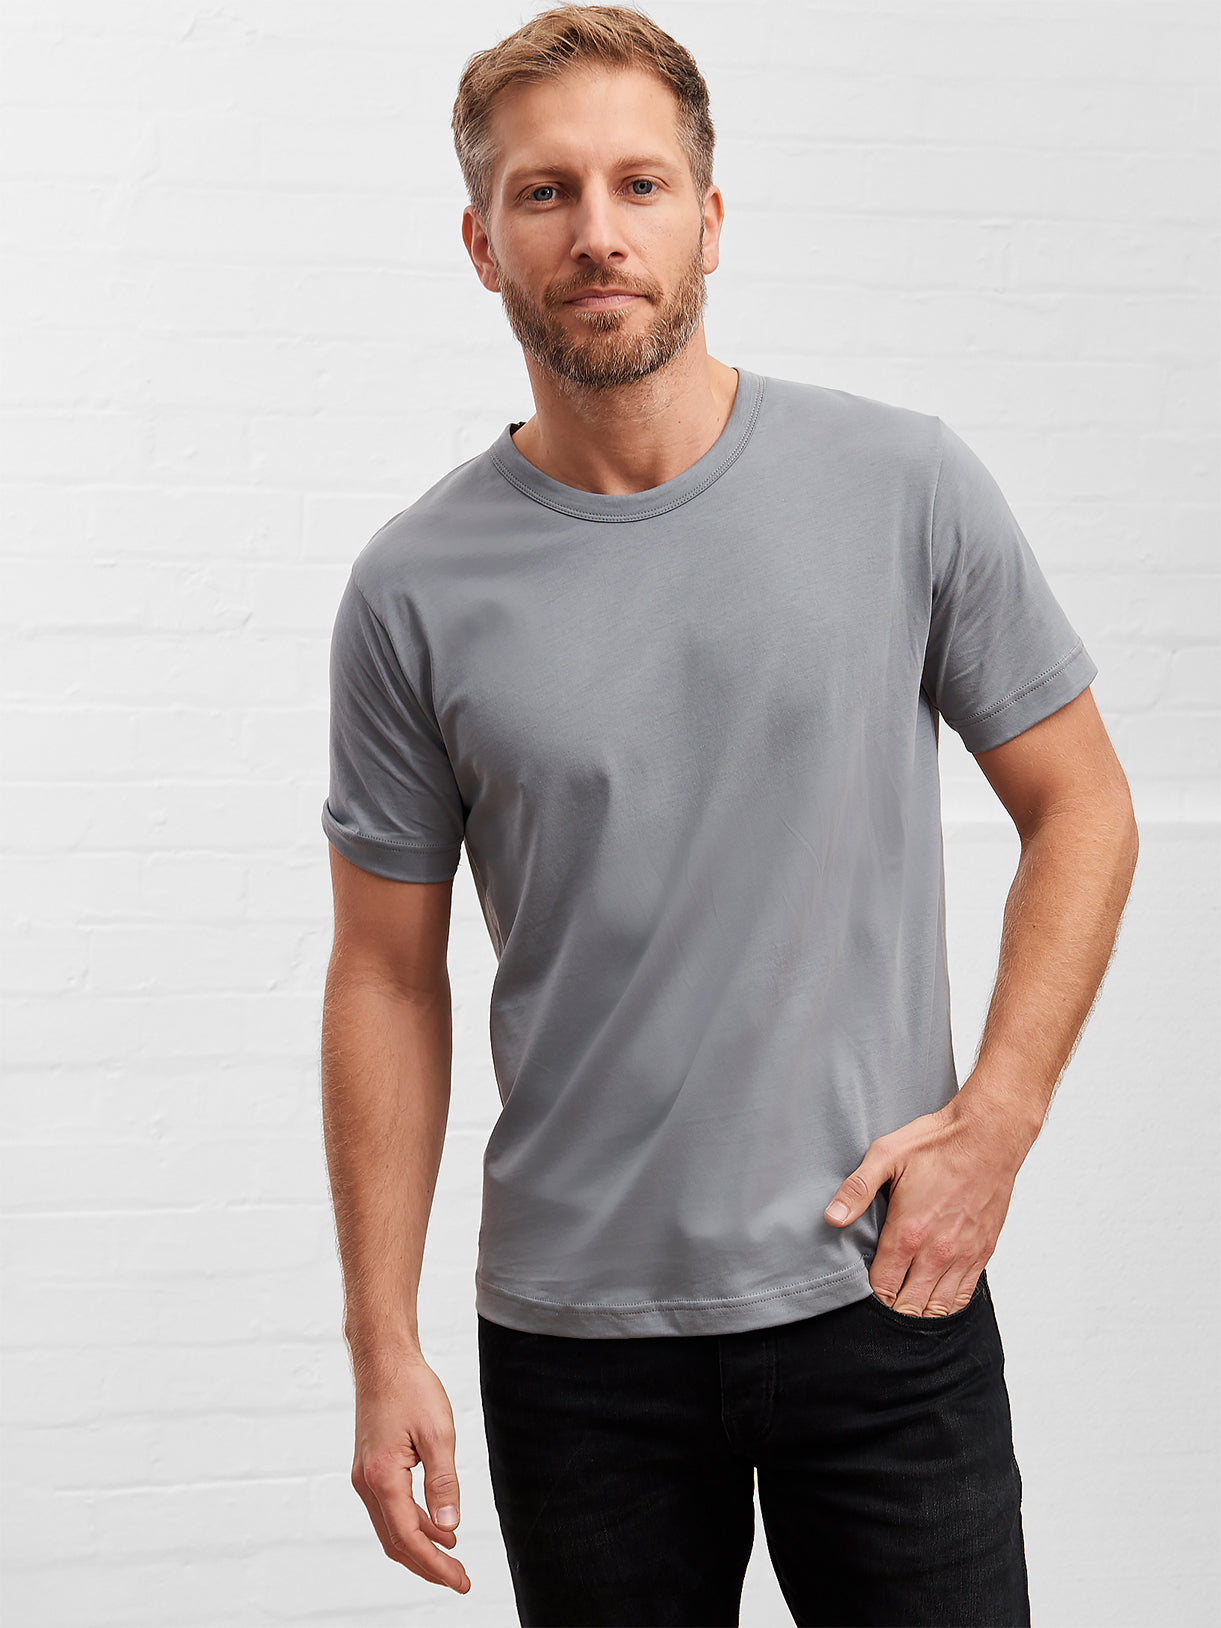 d08346641 100% Supima Cotton, Steel Grey Mens Quality T-shirt | The Cotton Story